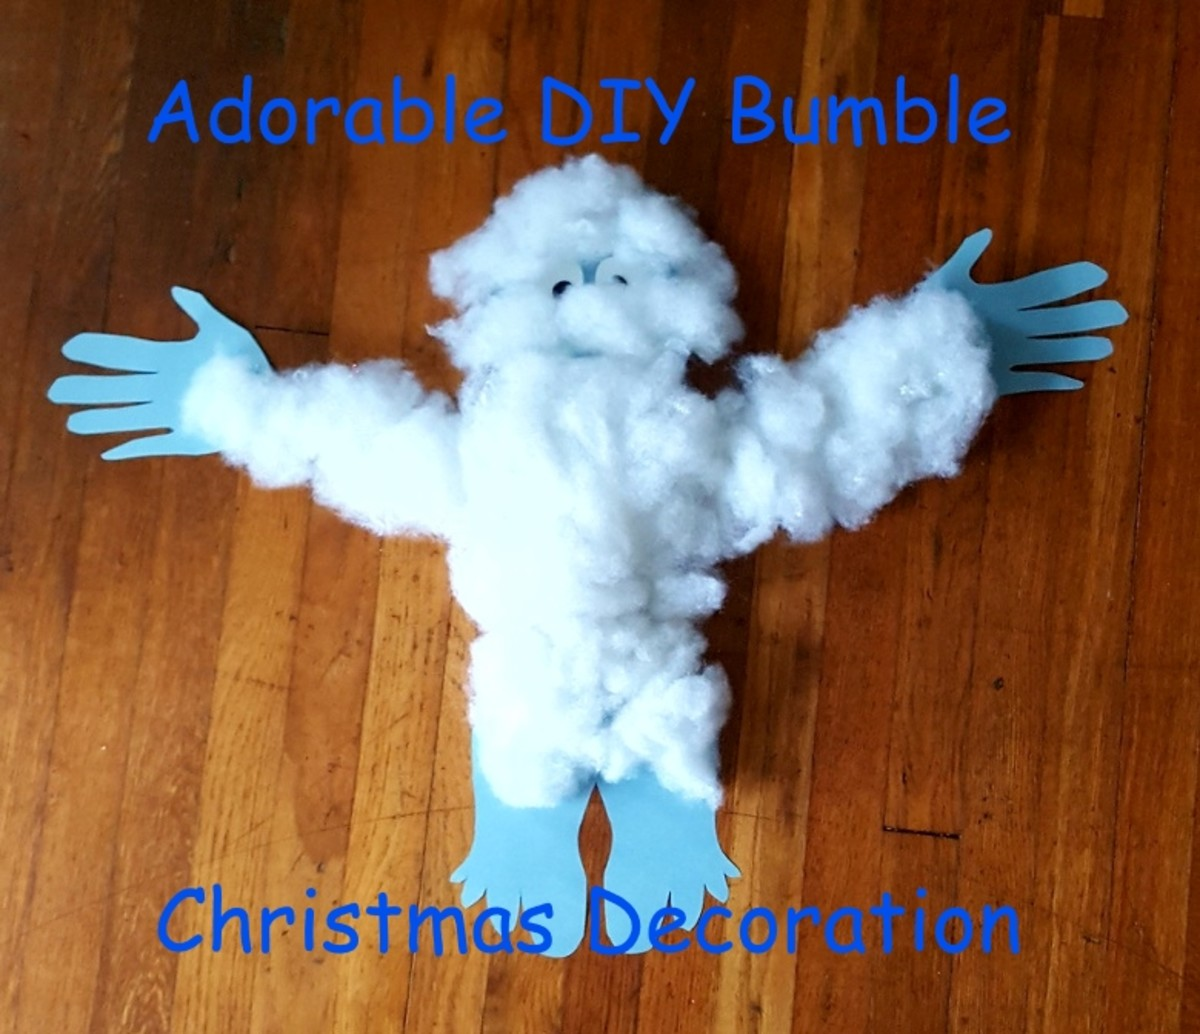 Adorable DIY Bumble Christmas Decoration